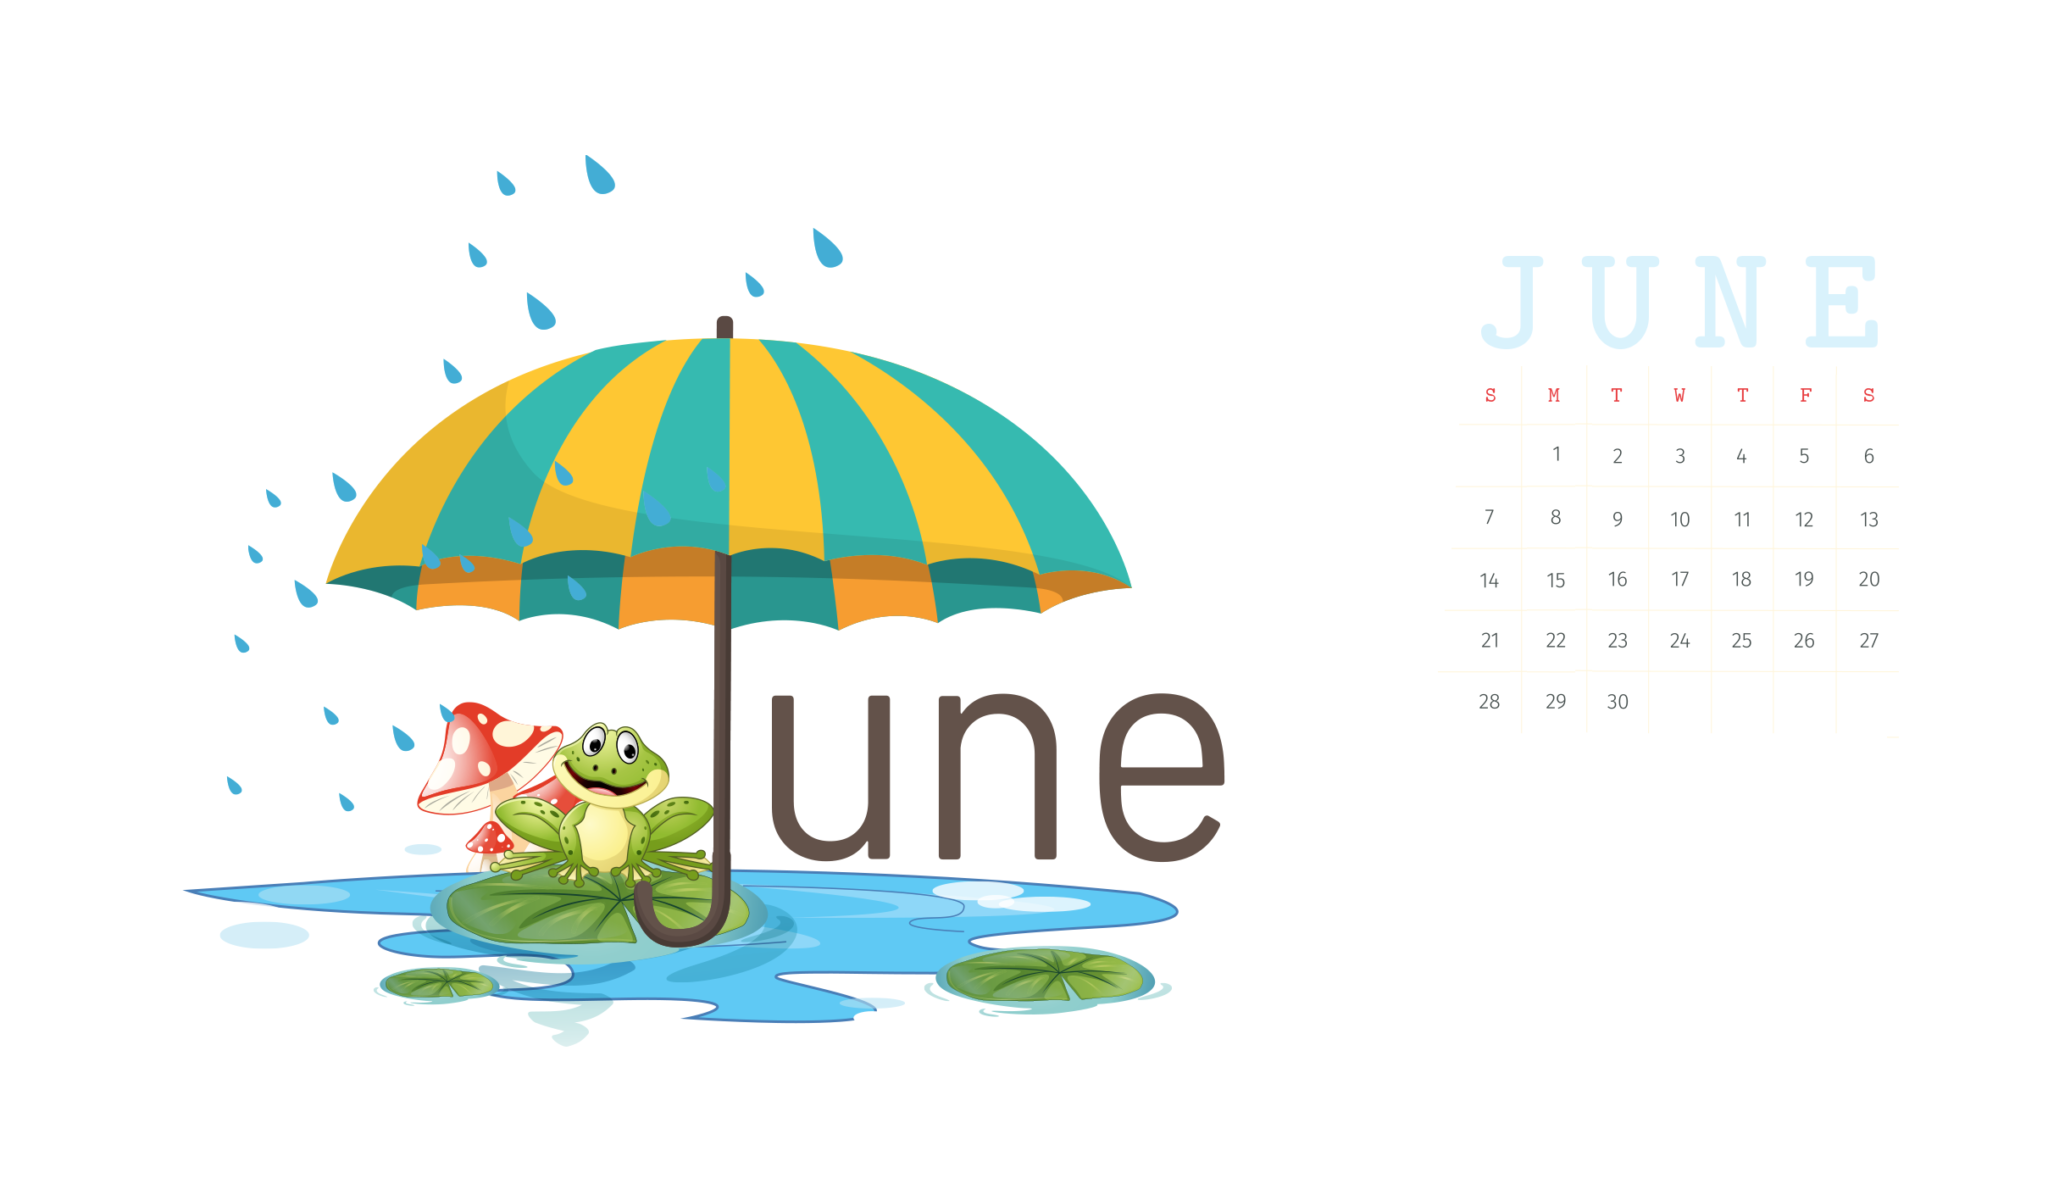 June 2020 Calendar Wallpaper for iPhone